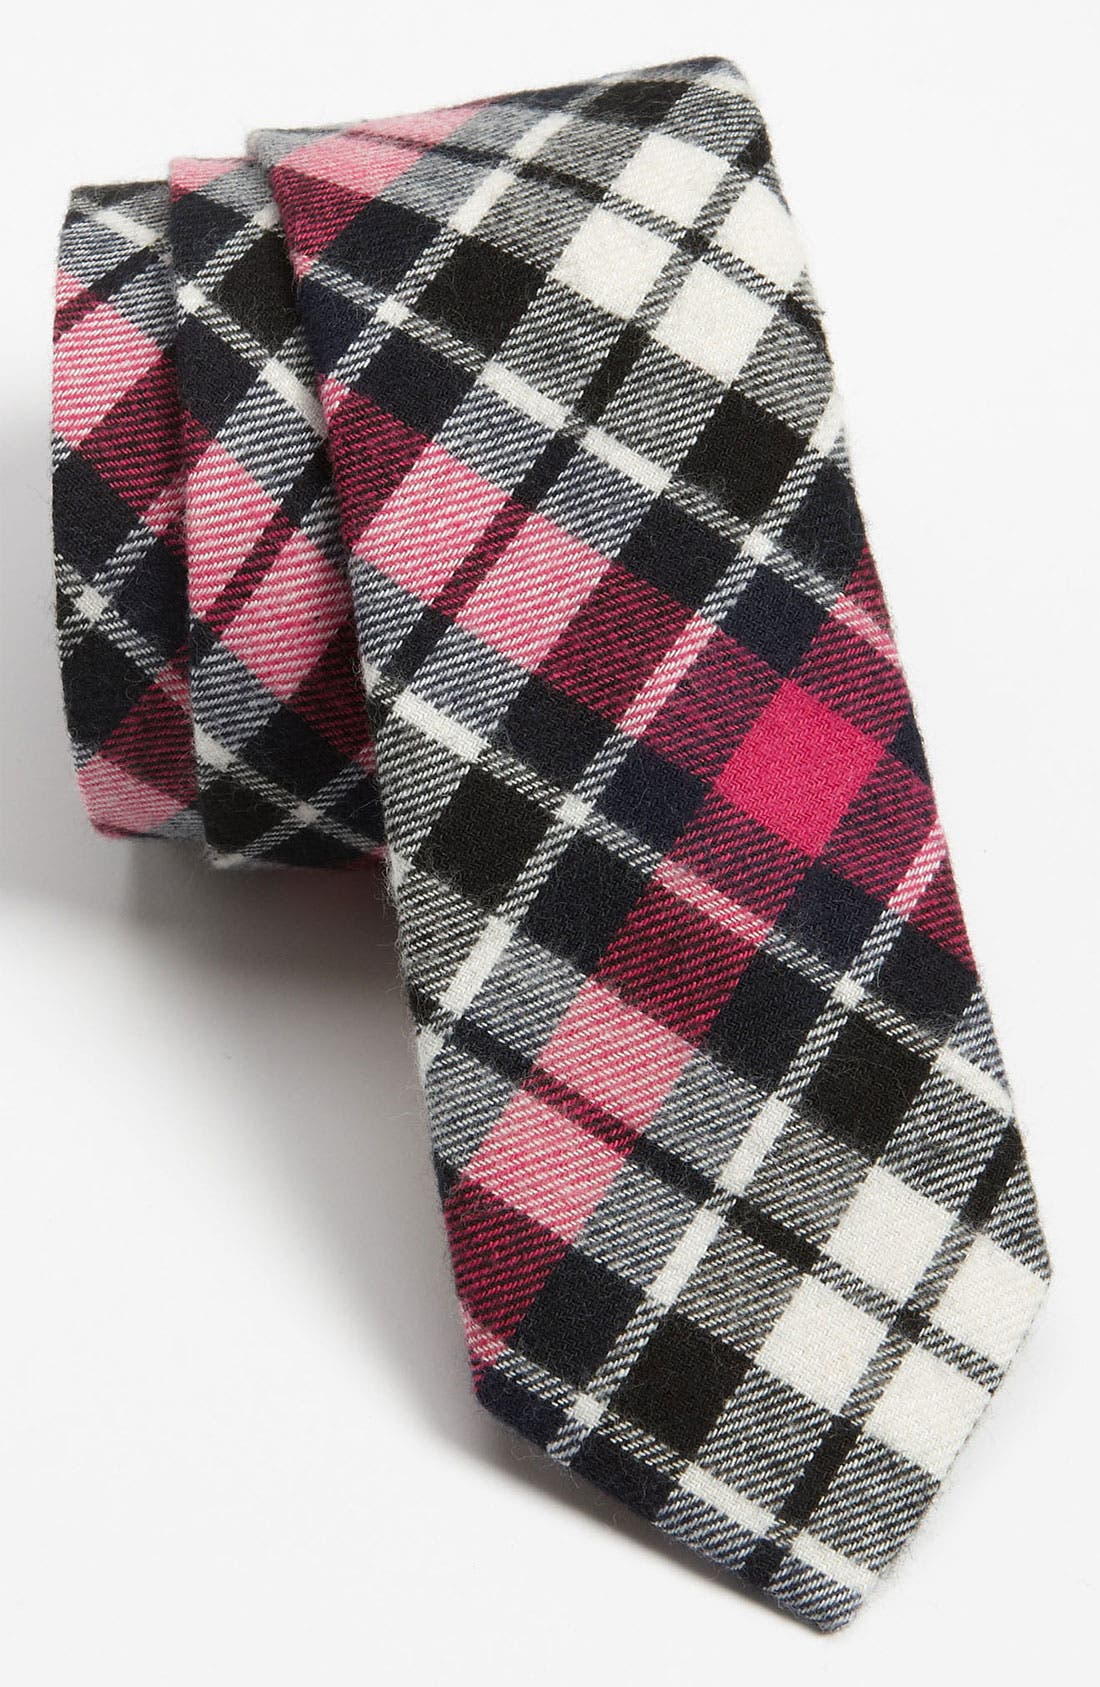 Main Image - The Tie Bar Woven Cotton Tie (Online Exclusive)